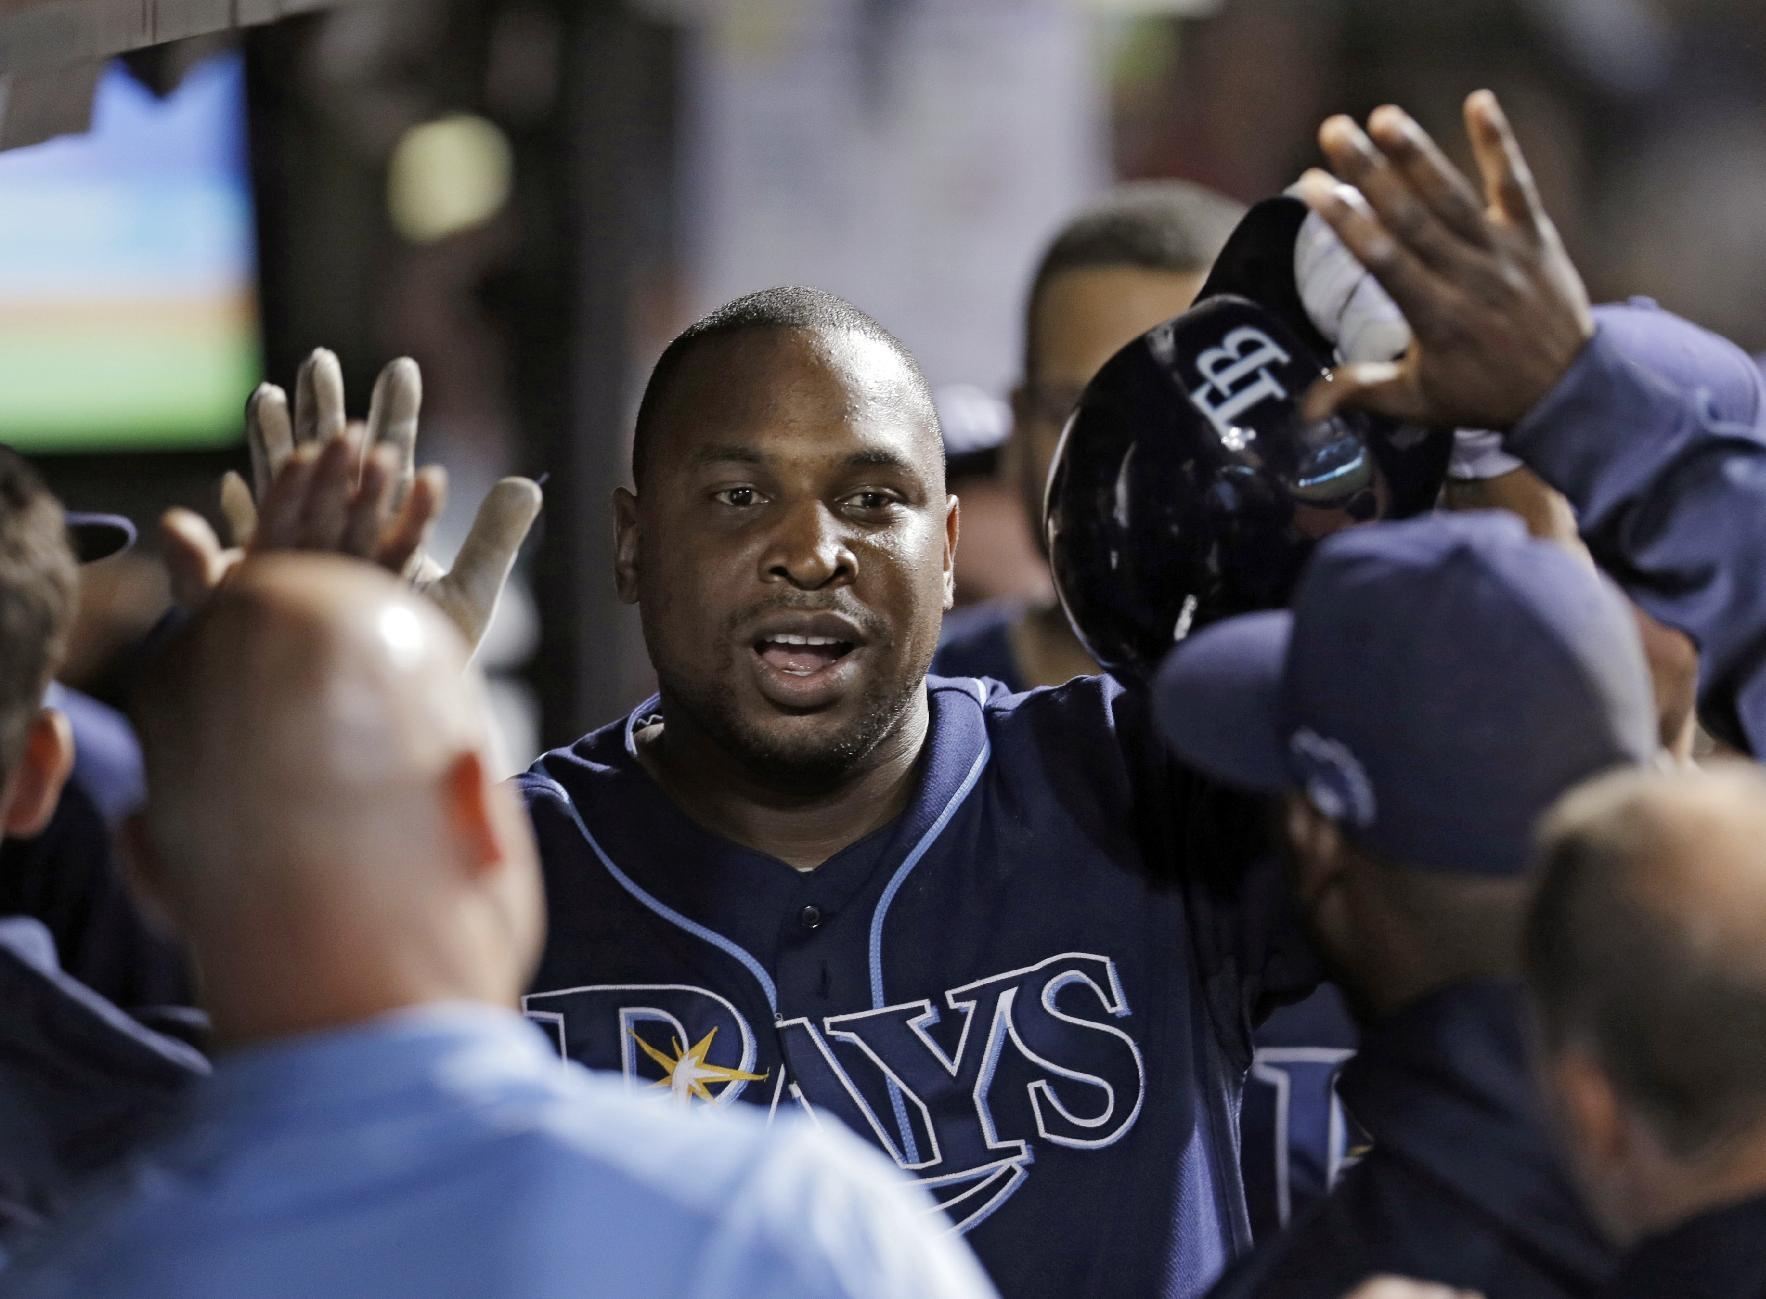 Tampa Bay Rays' Delmon Young is greeted in the dugout after a solo home run off Cleveland Indians starting pitcher Danny Salazar in the third inning of the AL wild-card baseball game Wednesday, Oct. 2, 2013, in Cleveland. (AP Photo/Tony Dejak)